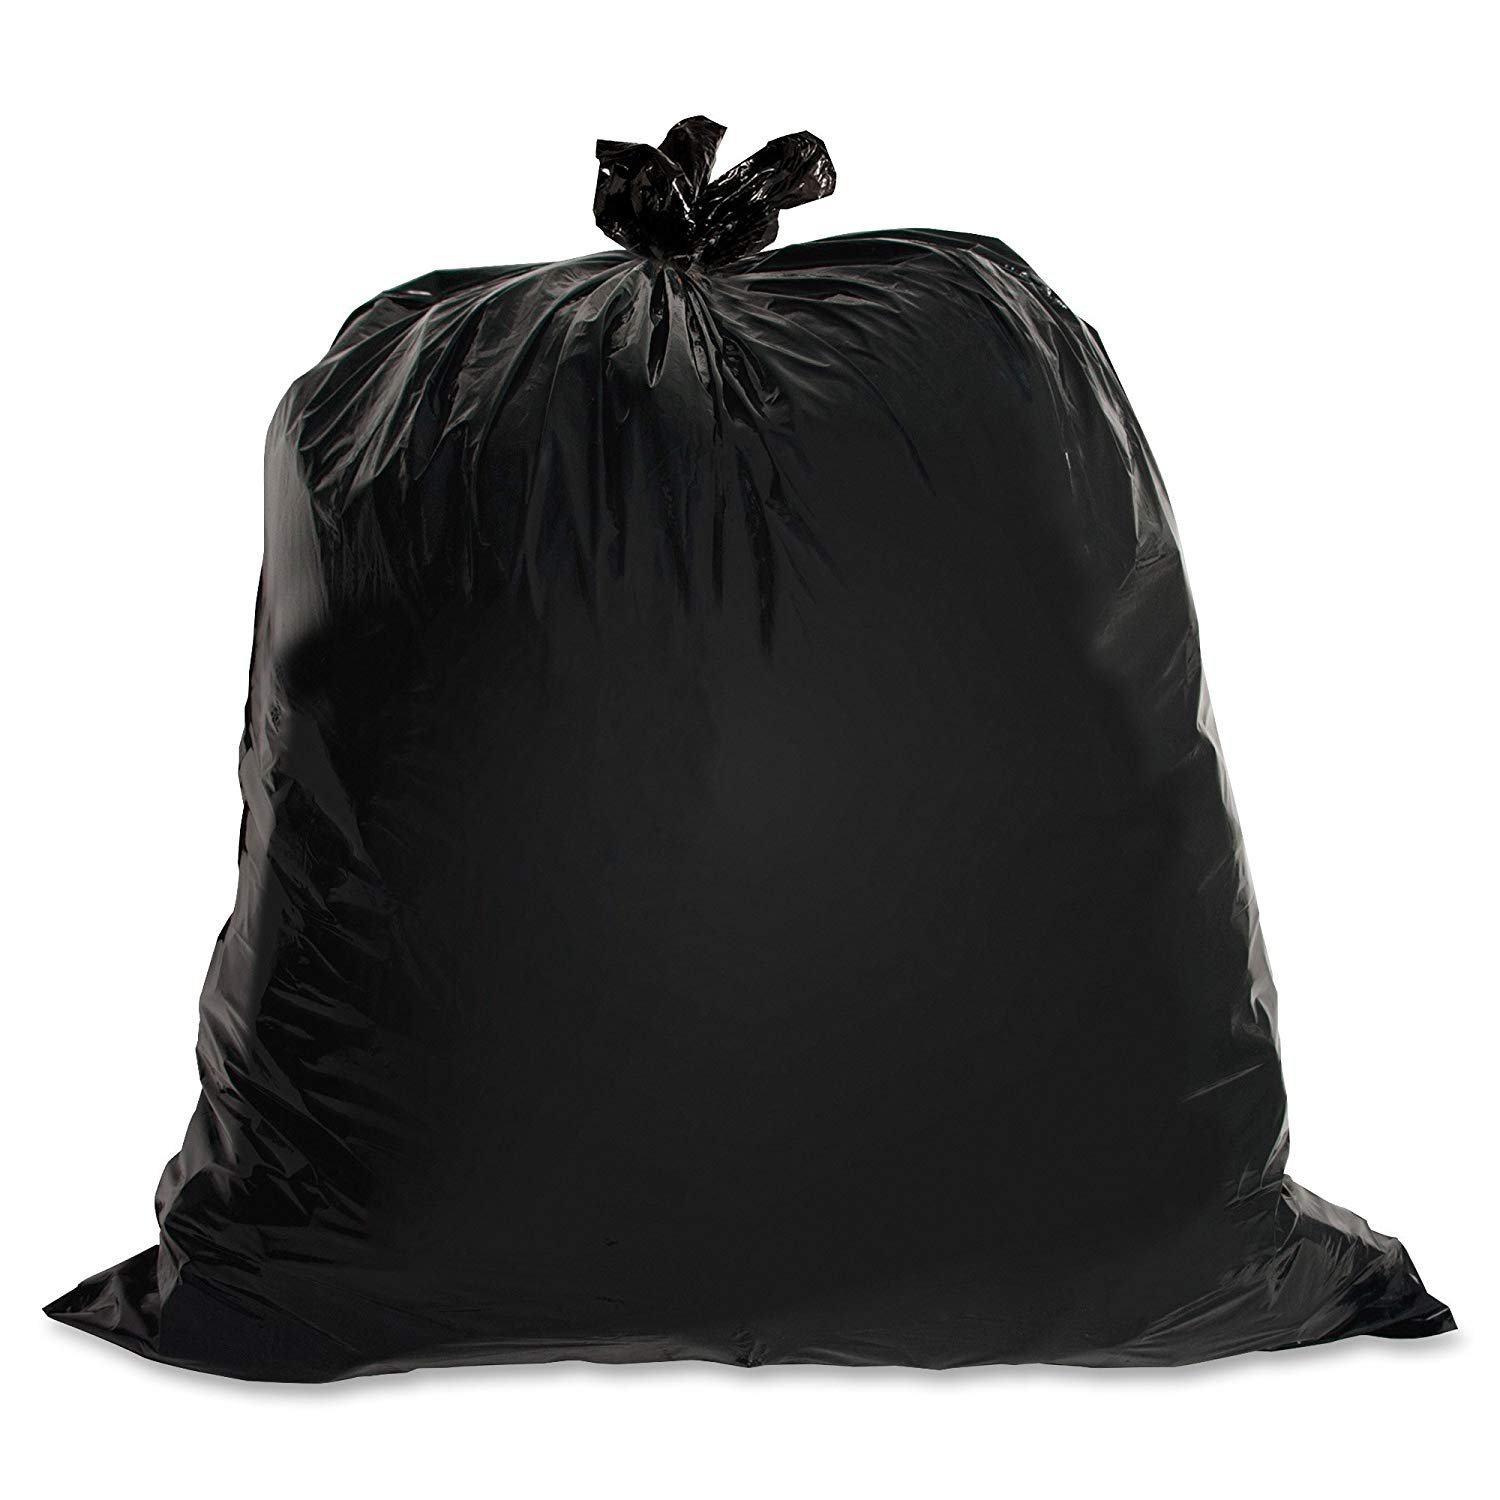 Genuine Joe GJO01534 Heavy Duty Low-Density Puncture Resistant Trash Bag, 45 Gallon Capacity, 46'' Length x 39'' Width x 1.50 mil Thickness, Black (Box of 50) (3 Boxes of 50)